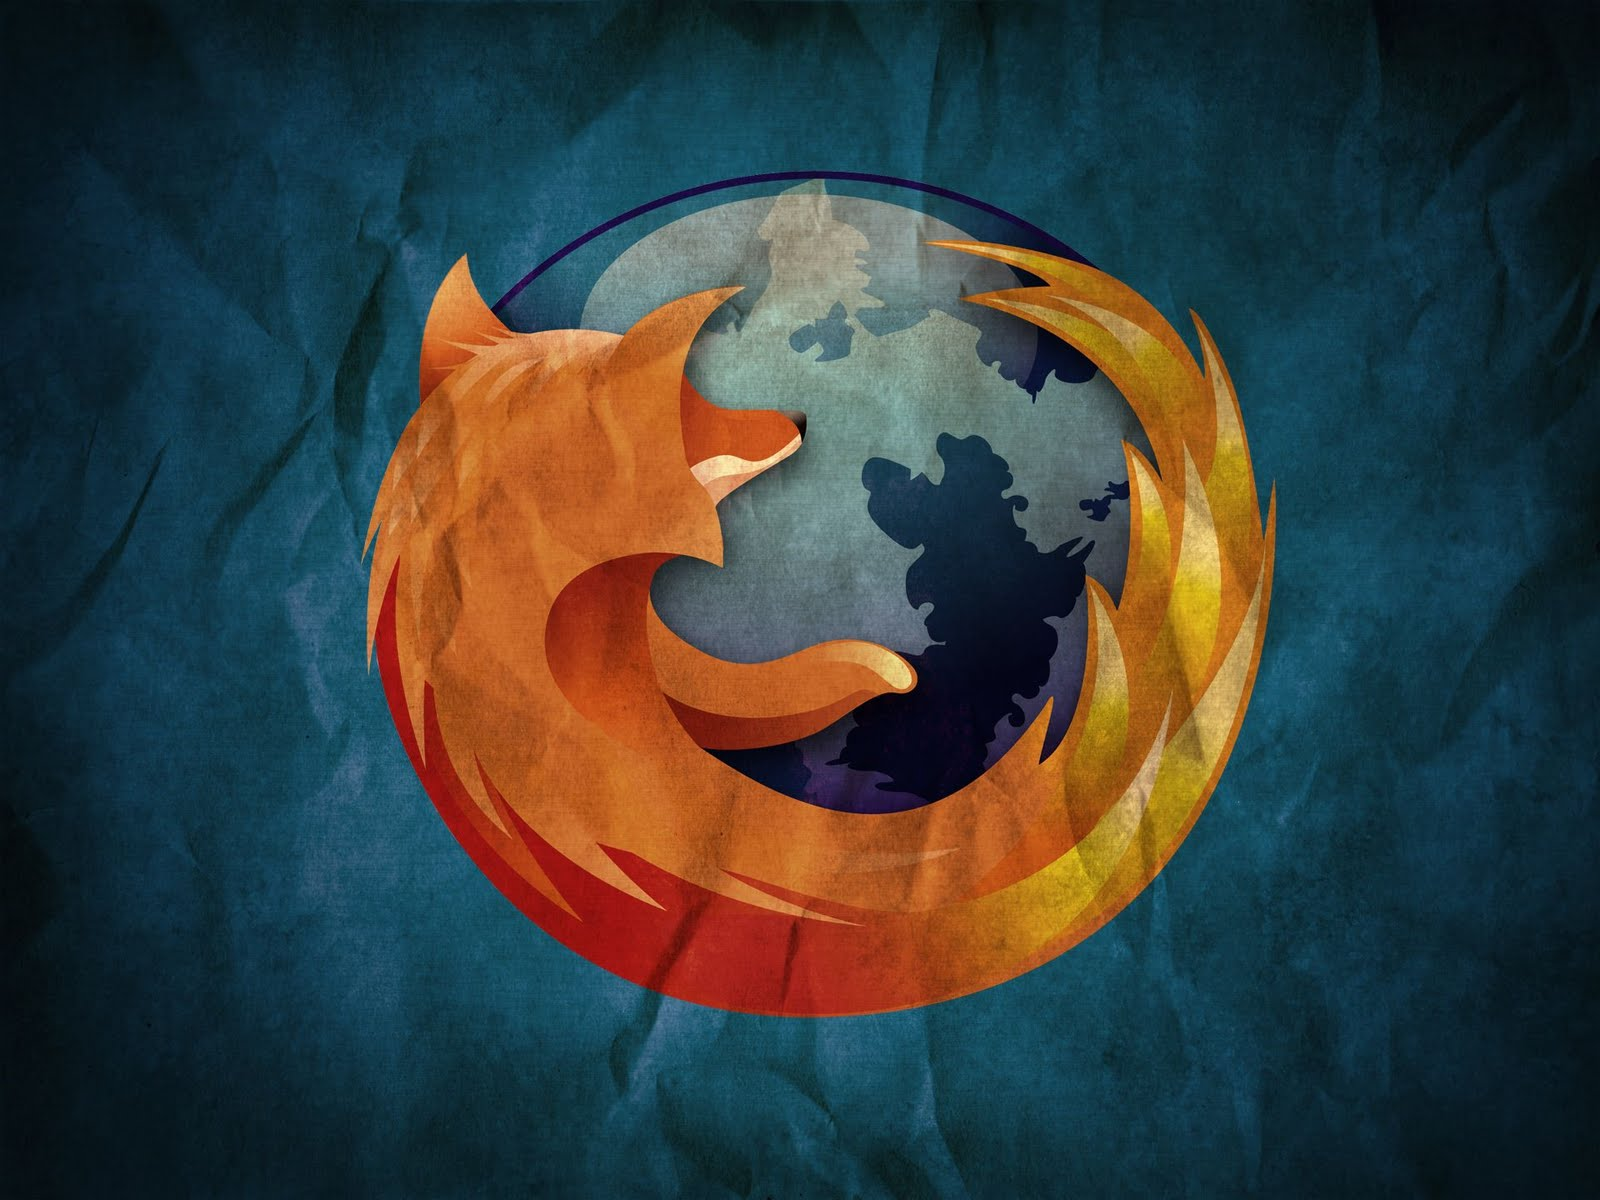 Firefox HD Wallpapers Download Firefox HD Desktop Backgrounds Full 1600x1200